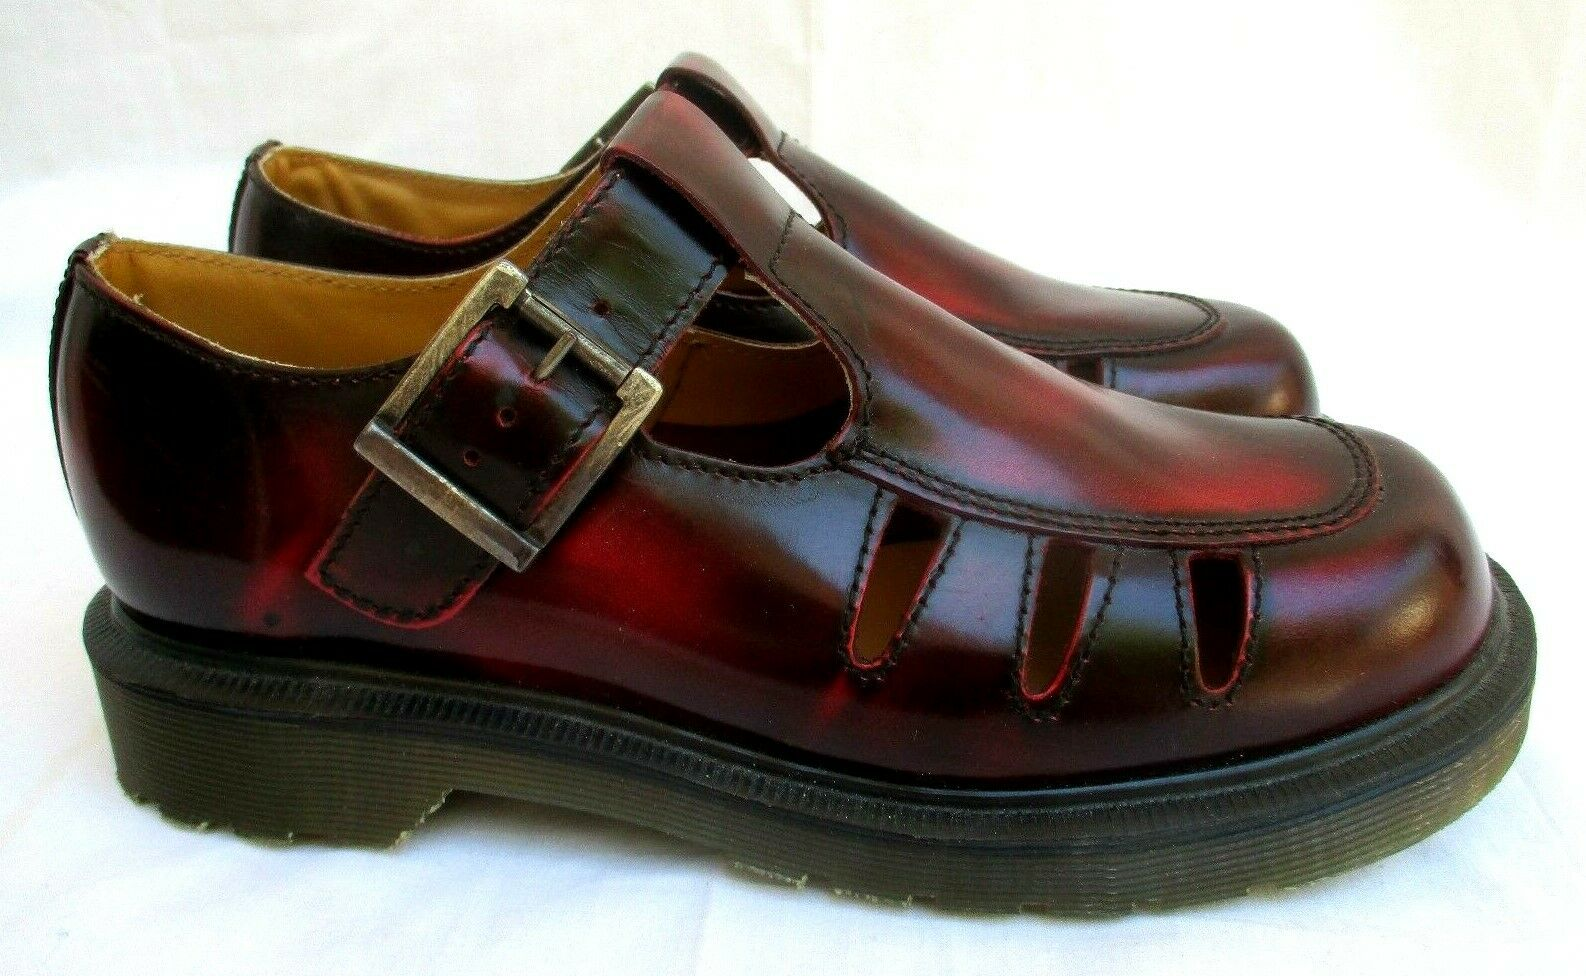 VTG..RARE..DR. MARTENS..MAROON..MARY JANE..CUT OUT..FLATS OXFORDS..NEW..sz 8